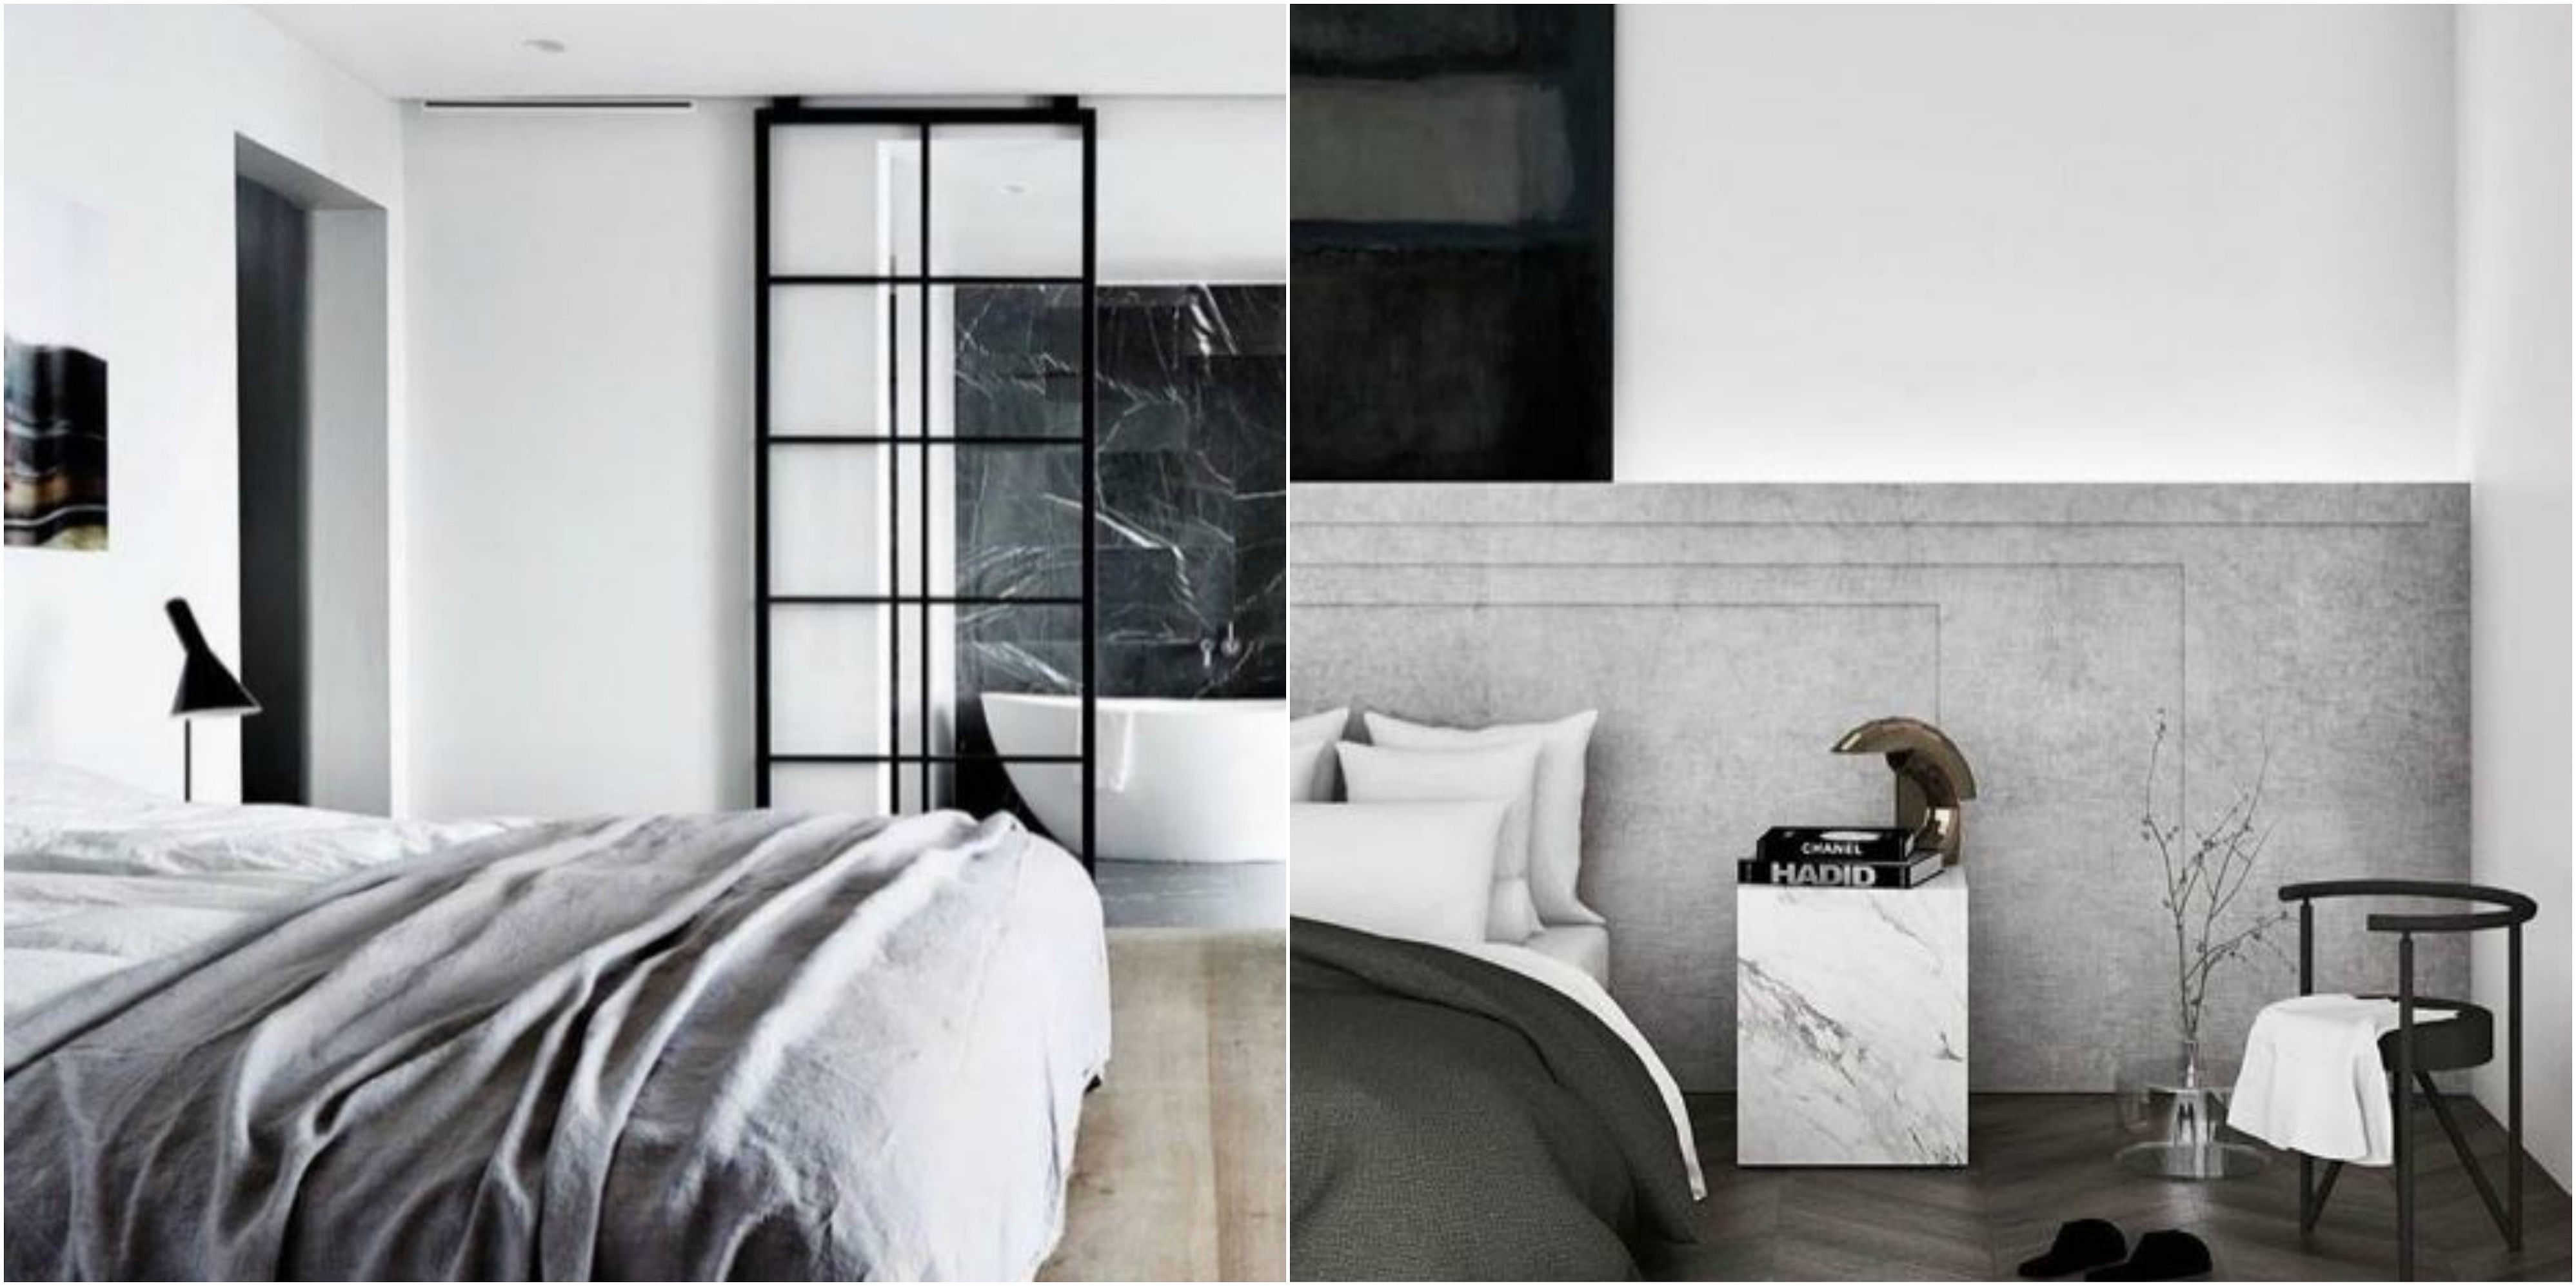 Bedroom design ideas modern and monochromatic for a for Monochromatic bedroom designs